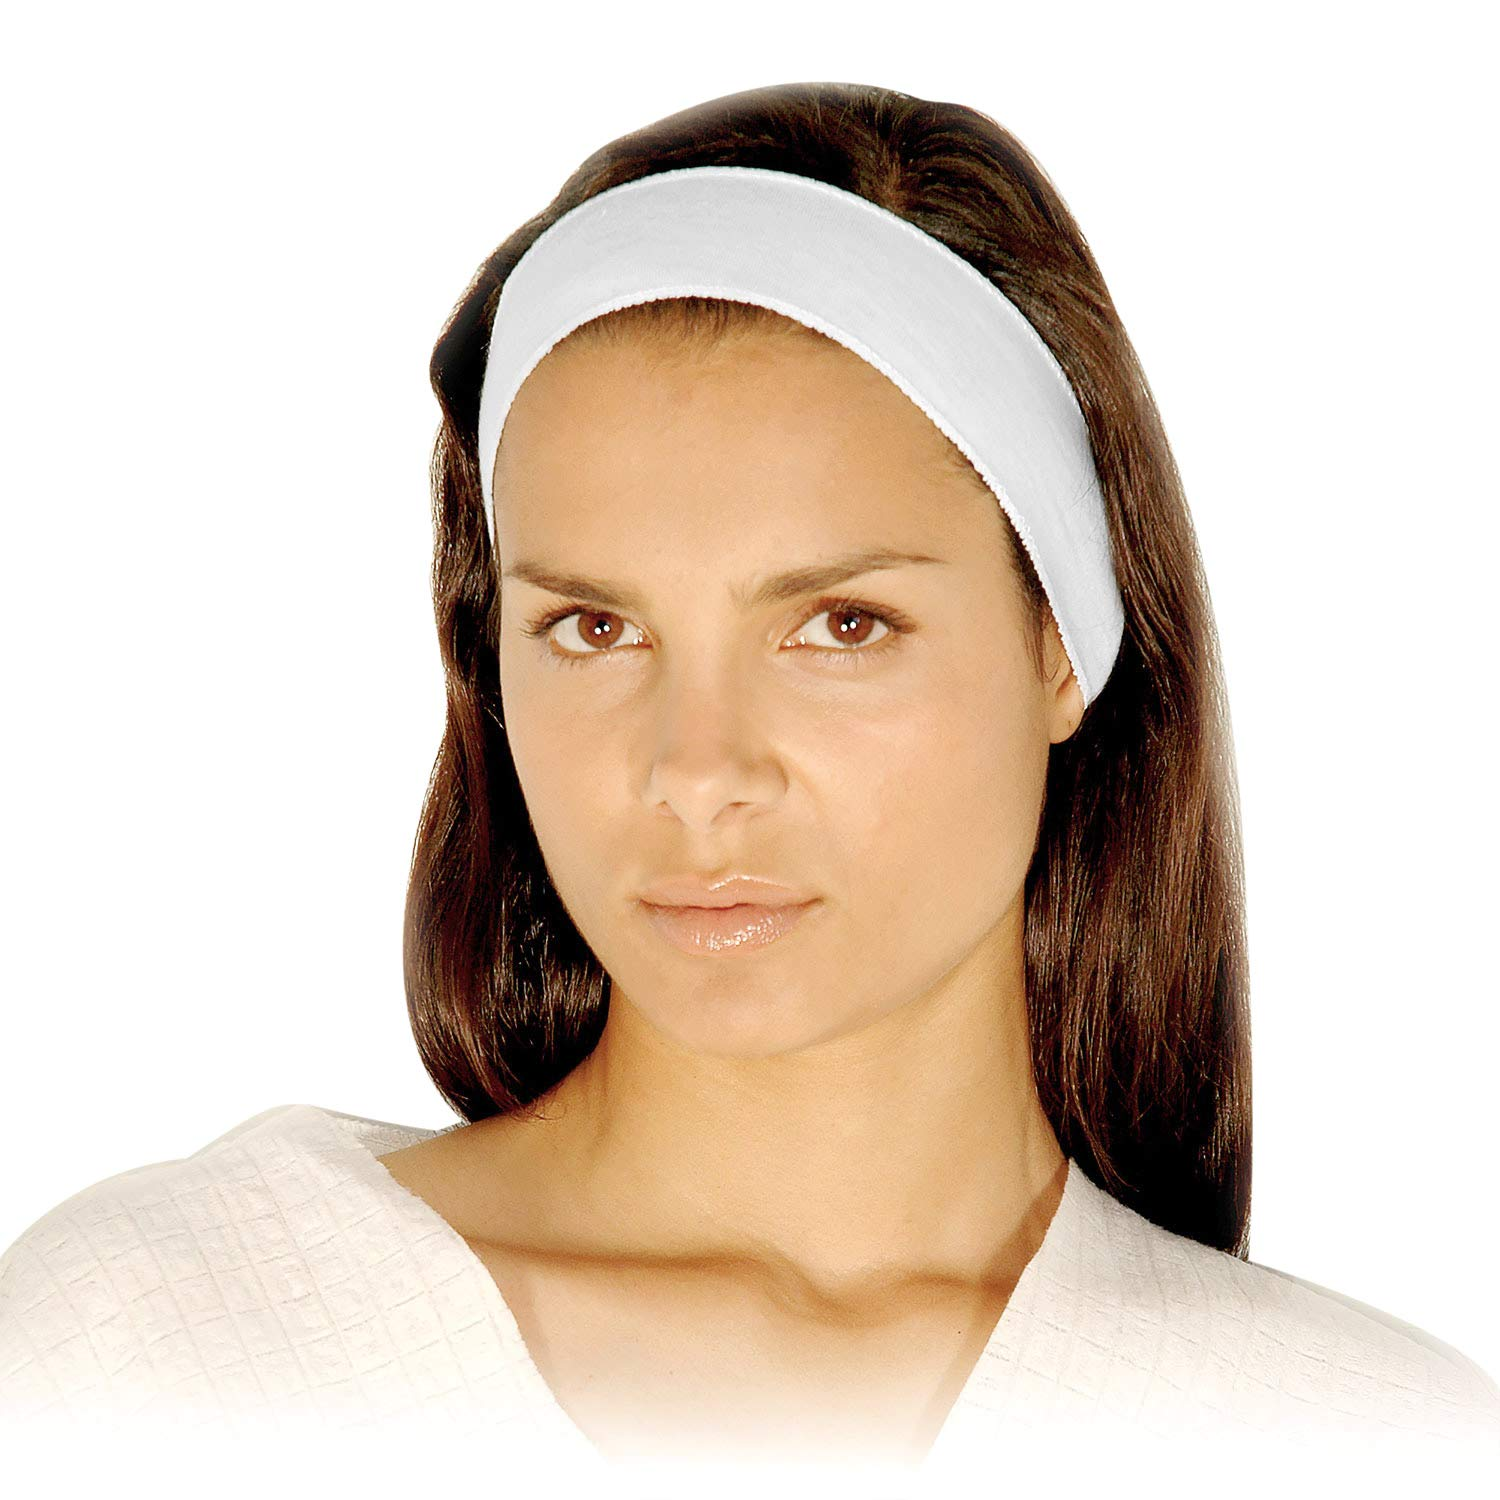 Disposable Headbands - APPEARUS Stretch Cotton Cloth Spa Facial Headband (48 Count)